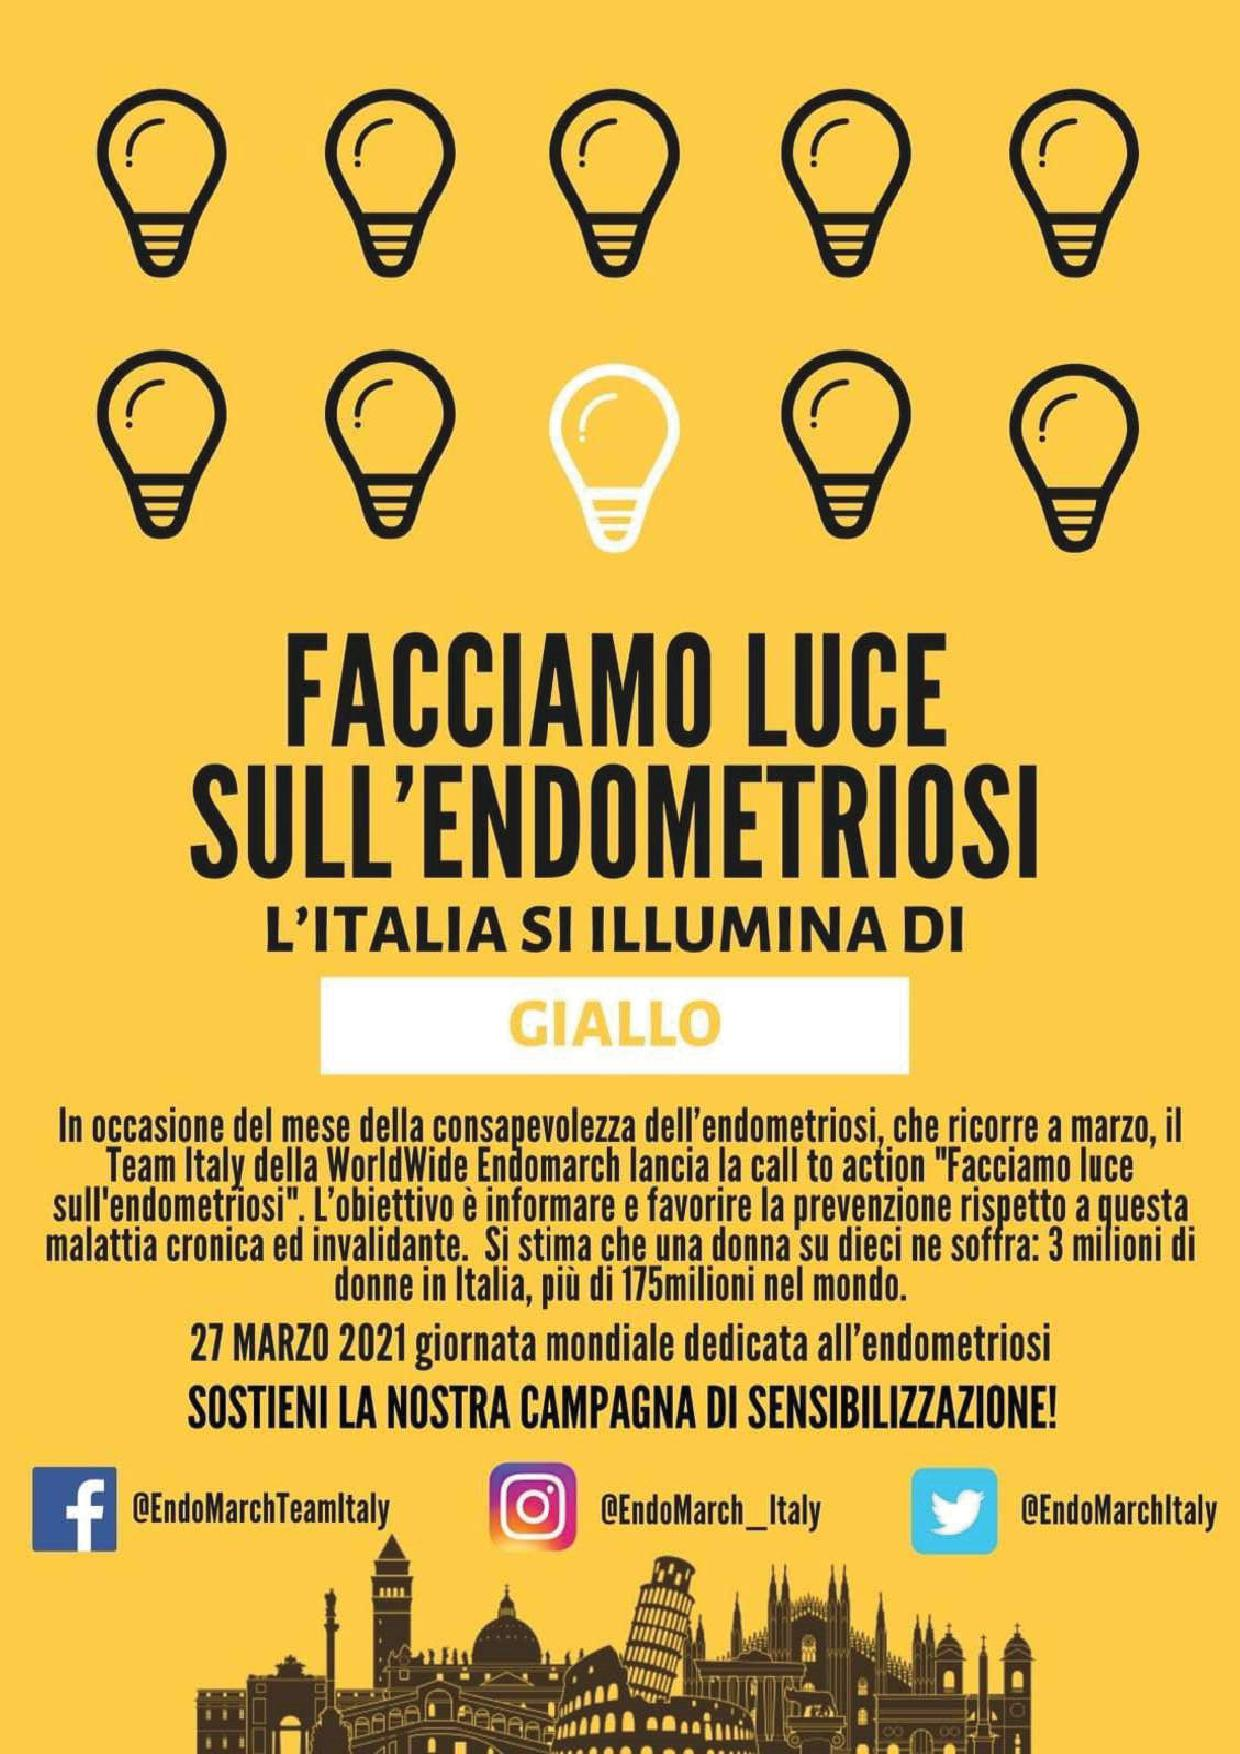 Giornata mondiale dedciata all'endometriosi